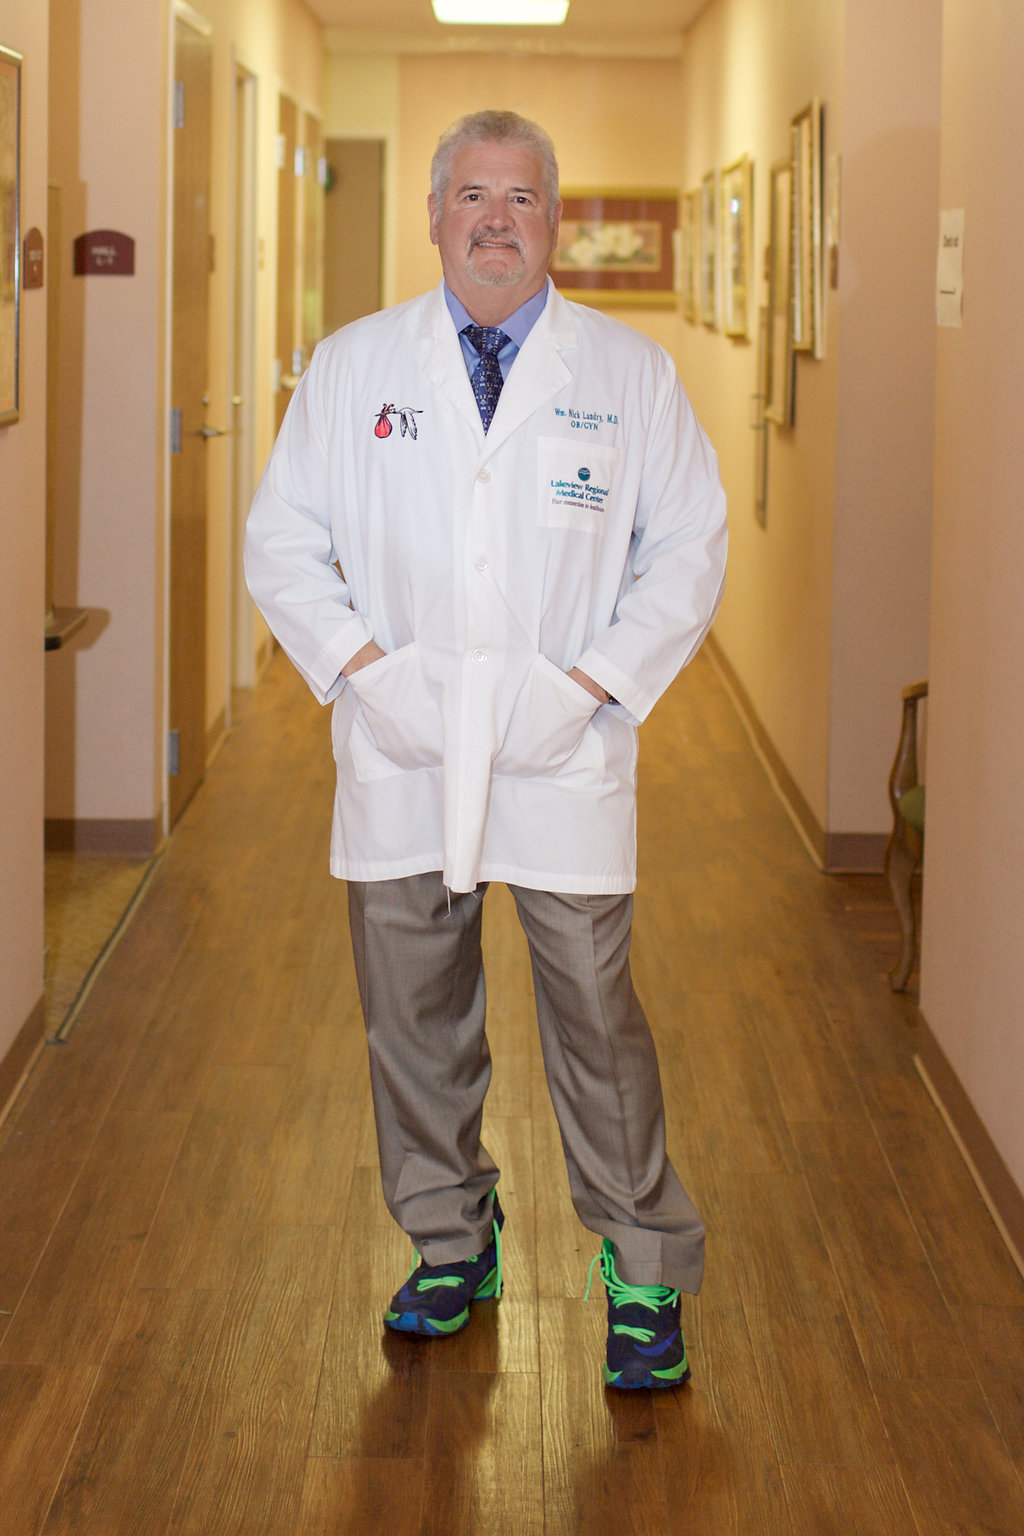 Dr. William Nick Landry